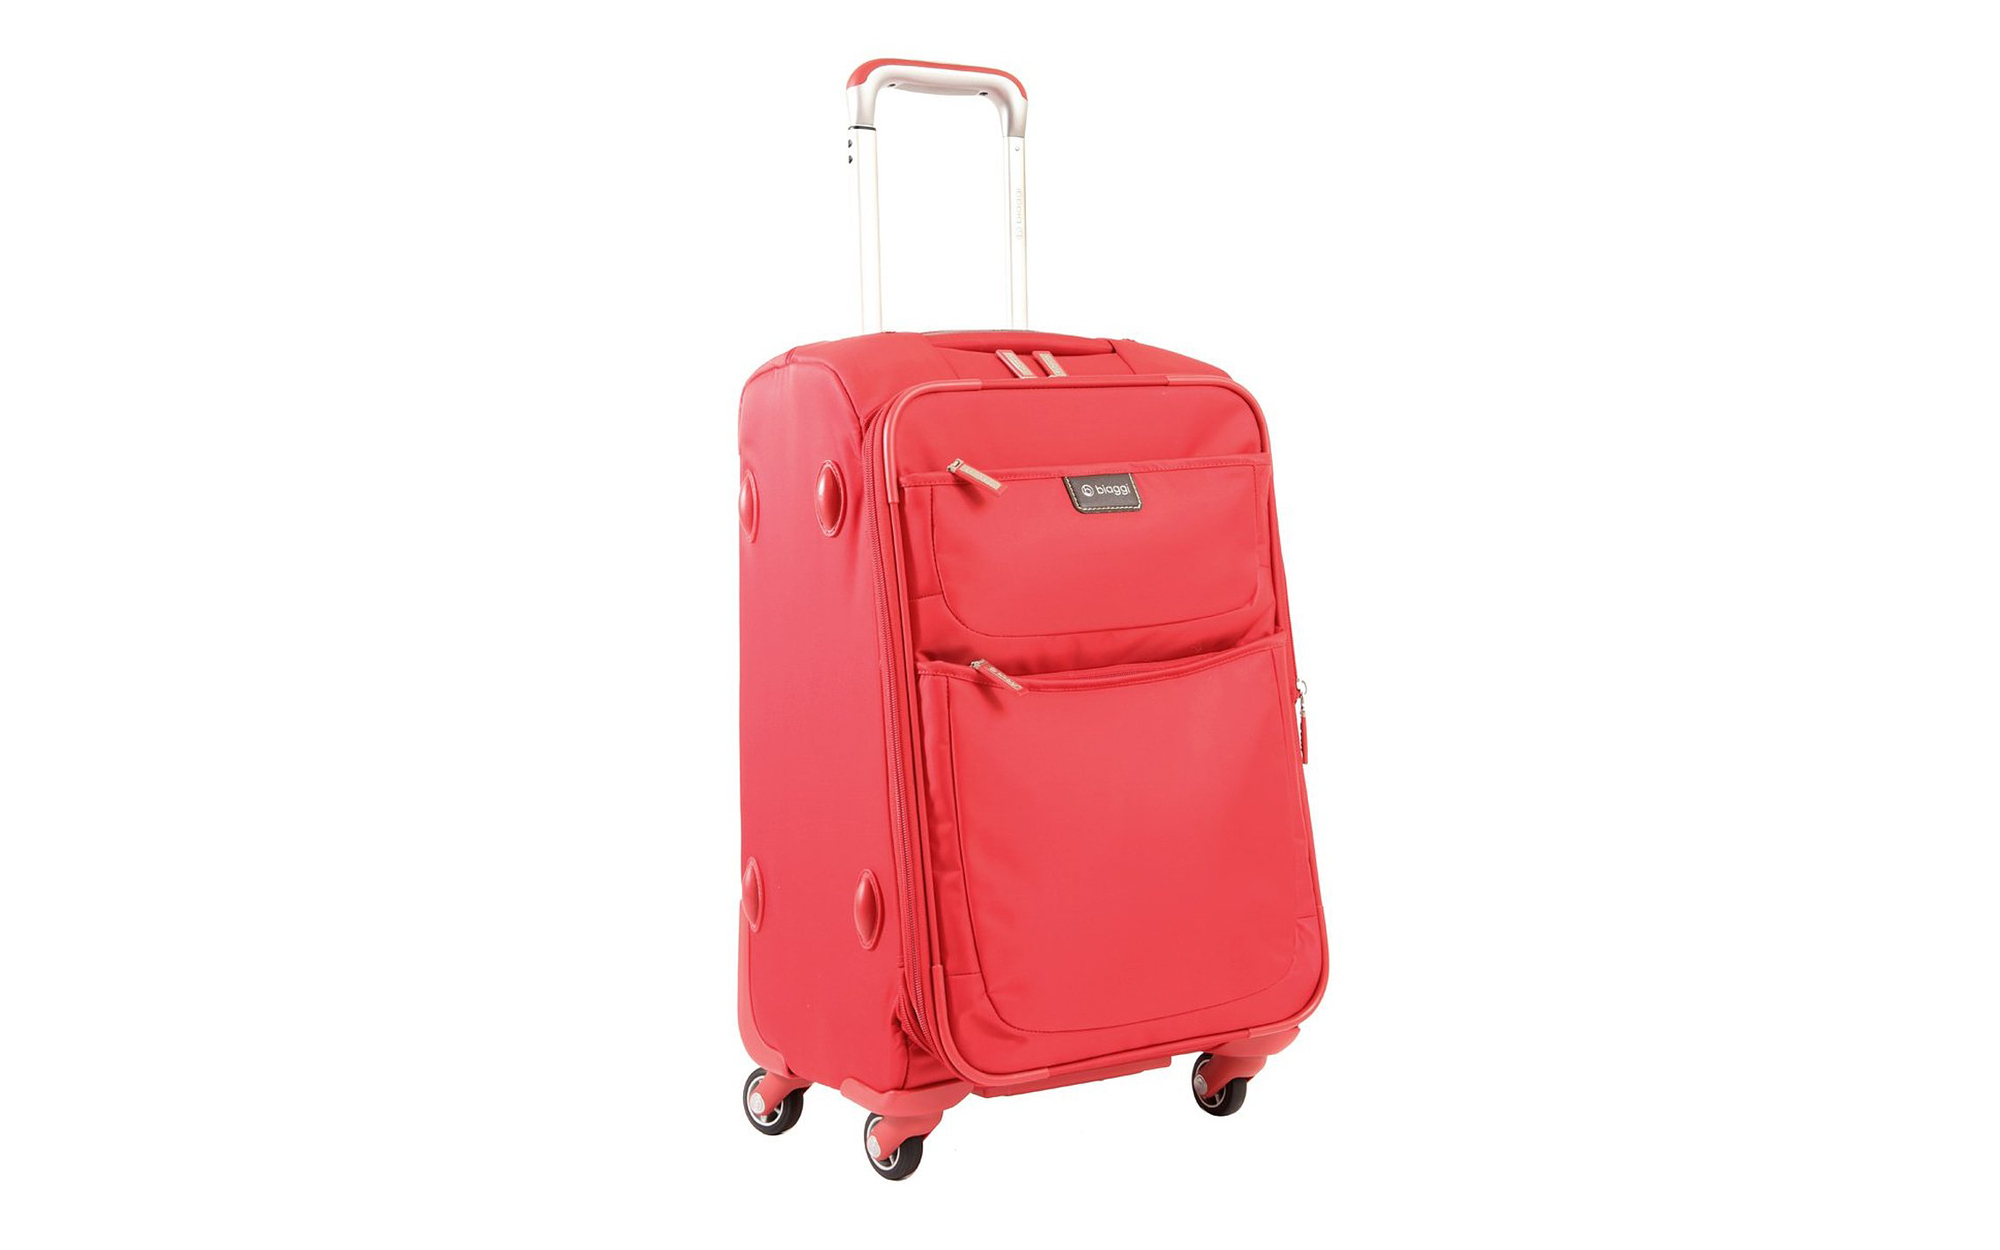 Best Carry-On Luggage for Business Travel: Biaggi foldable spinner